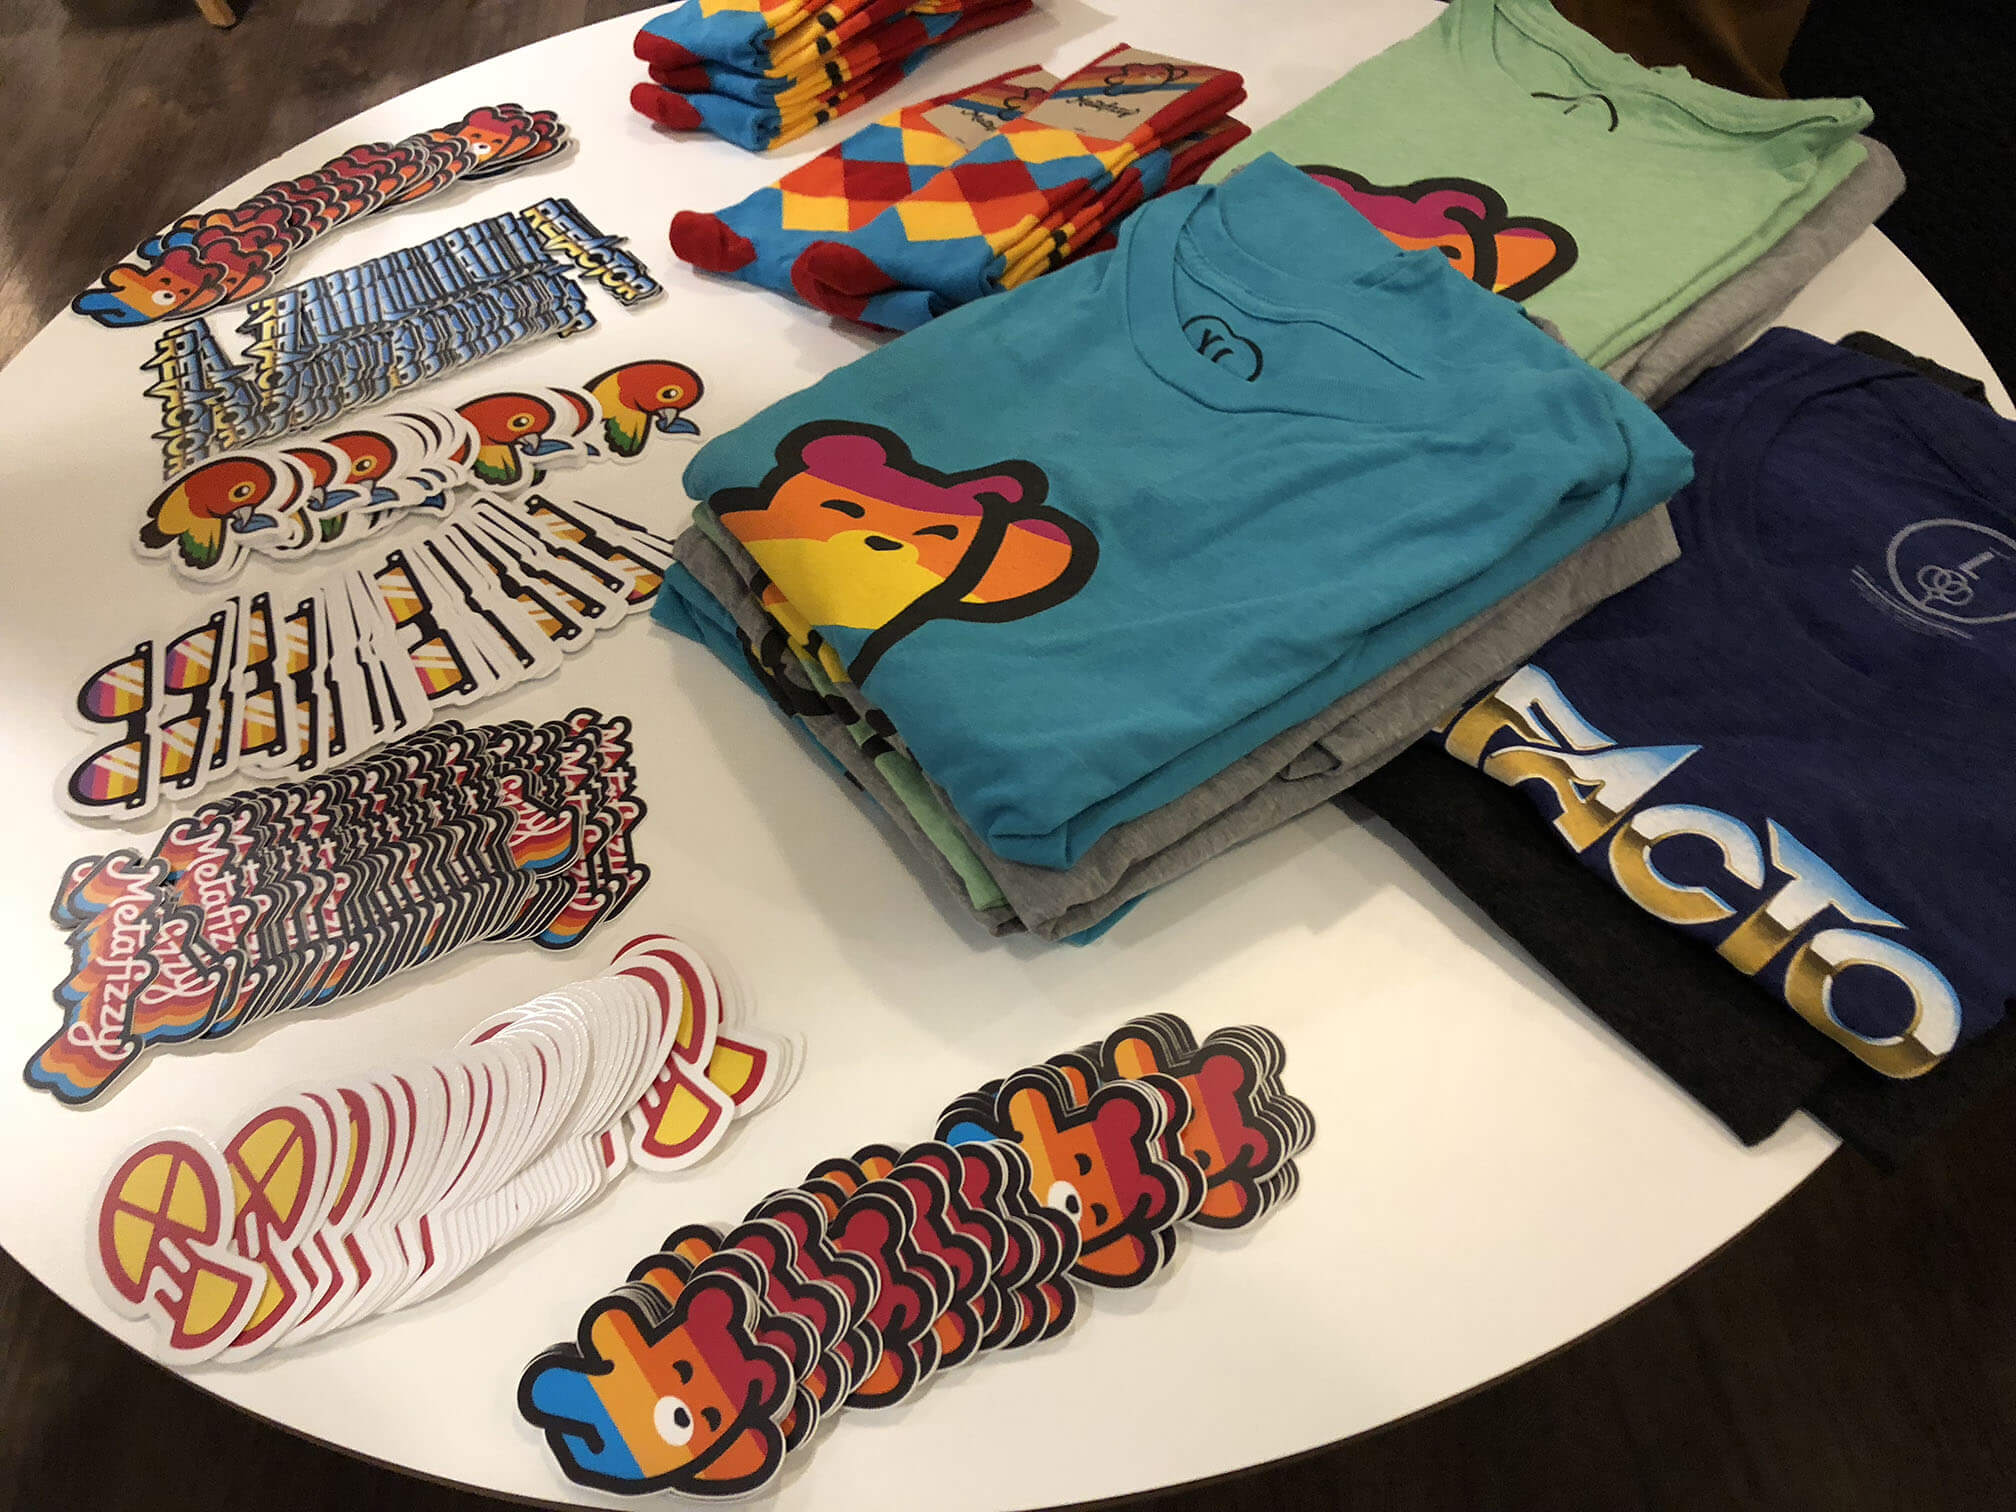 Stickers and shirts with much swag!